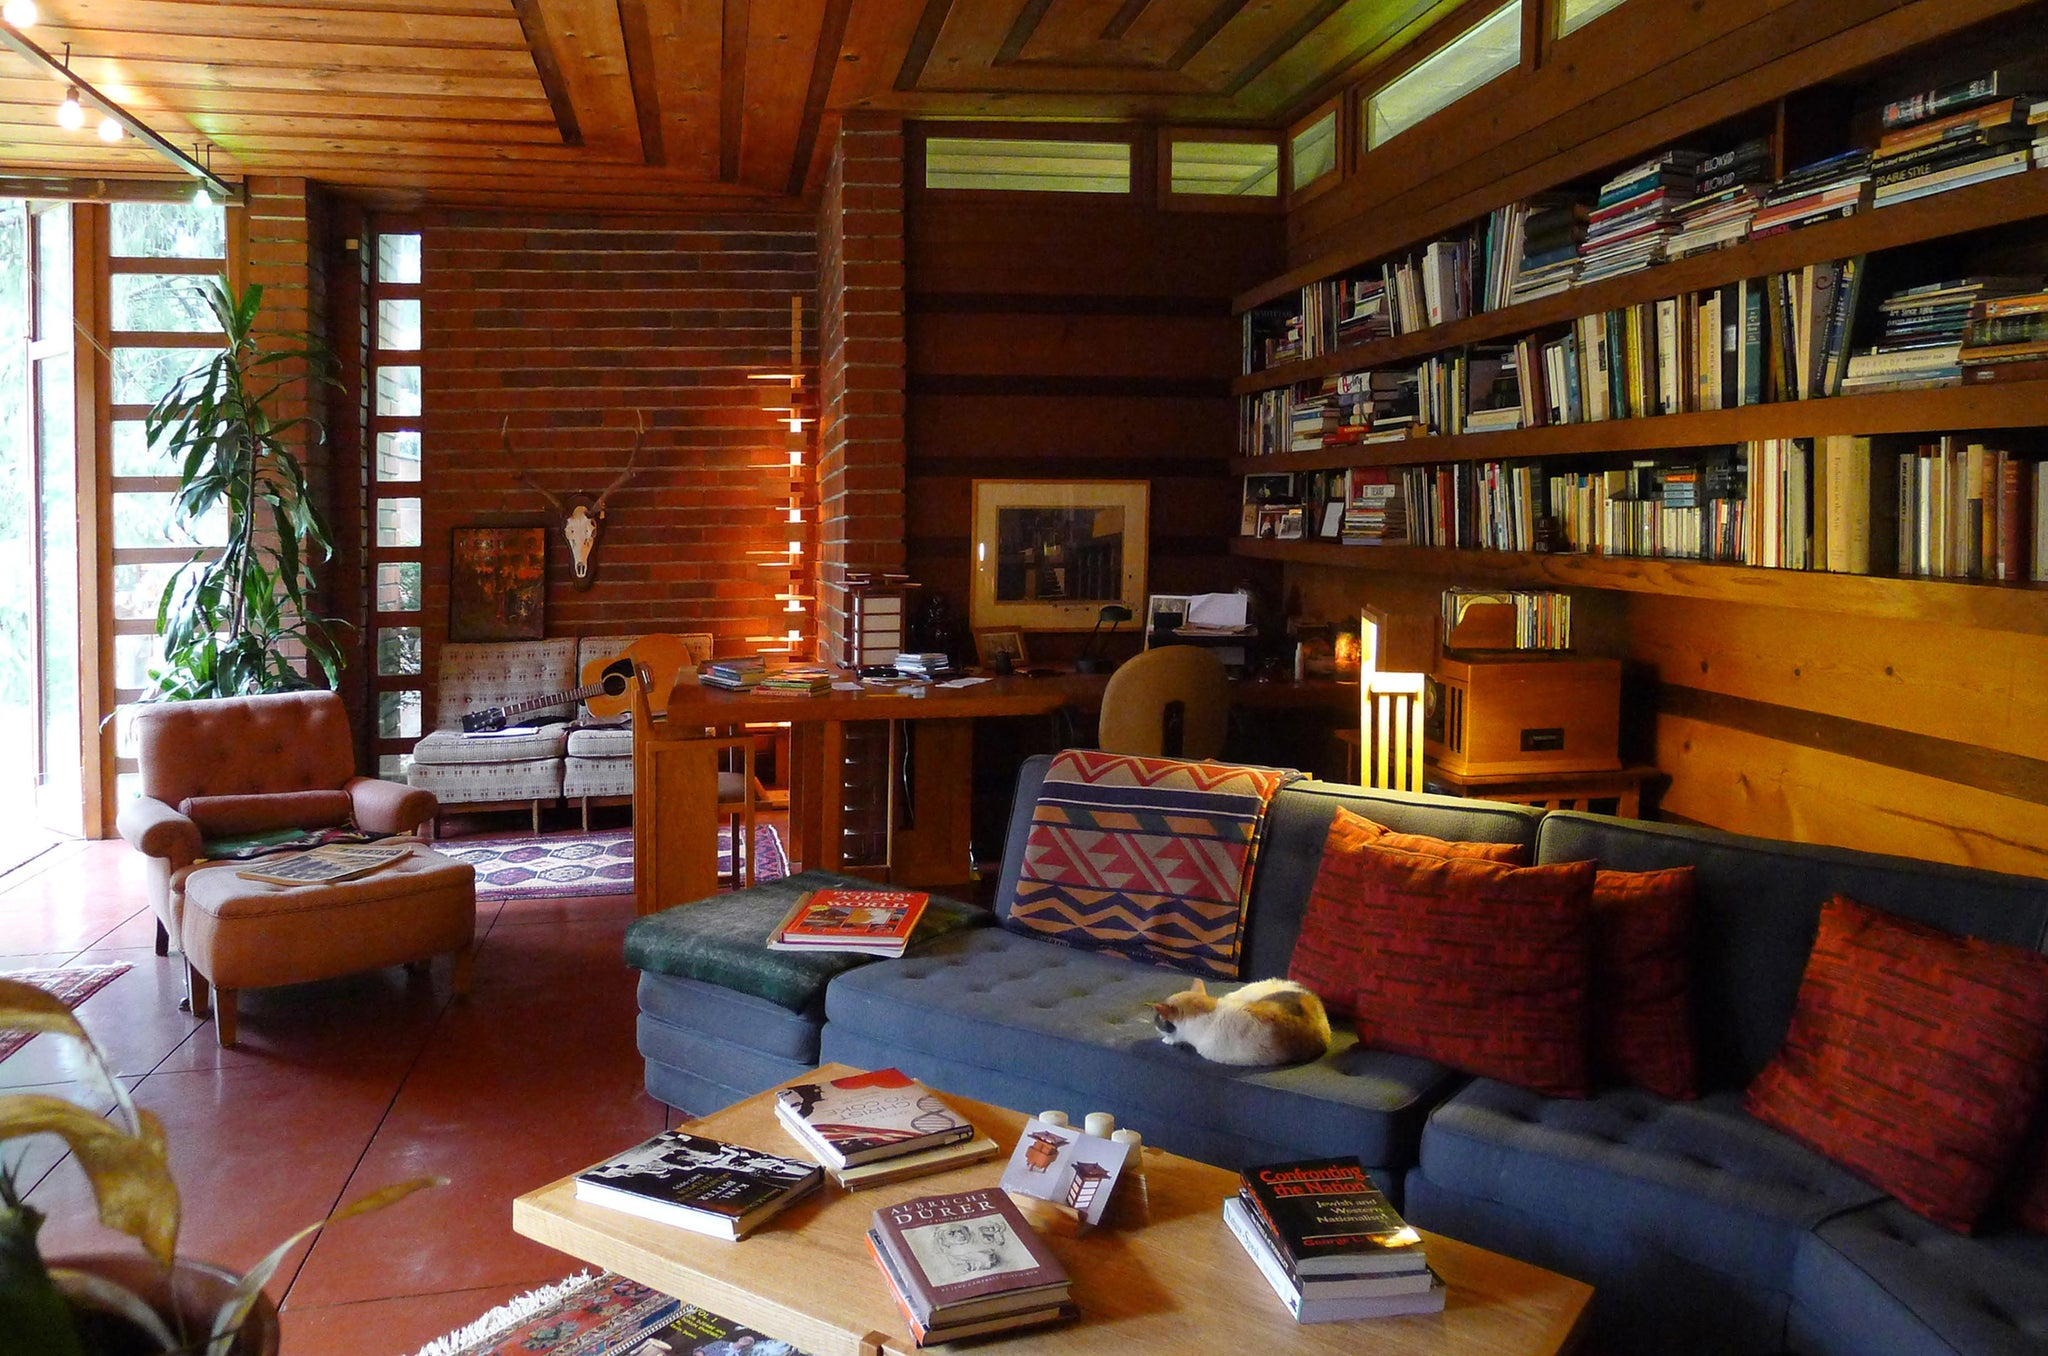 Frank Lloyd Wright's Jacobs First House living room